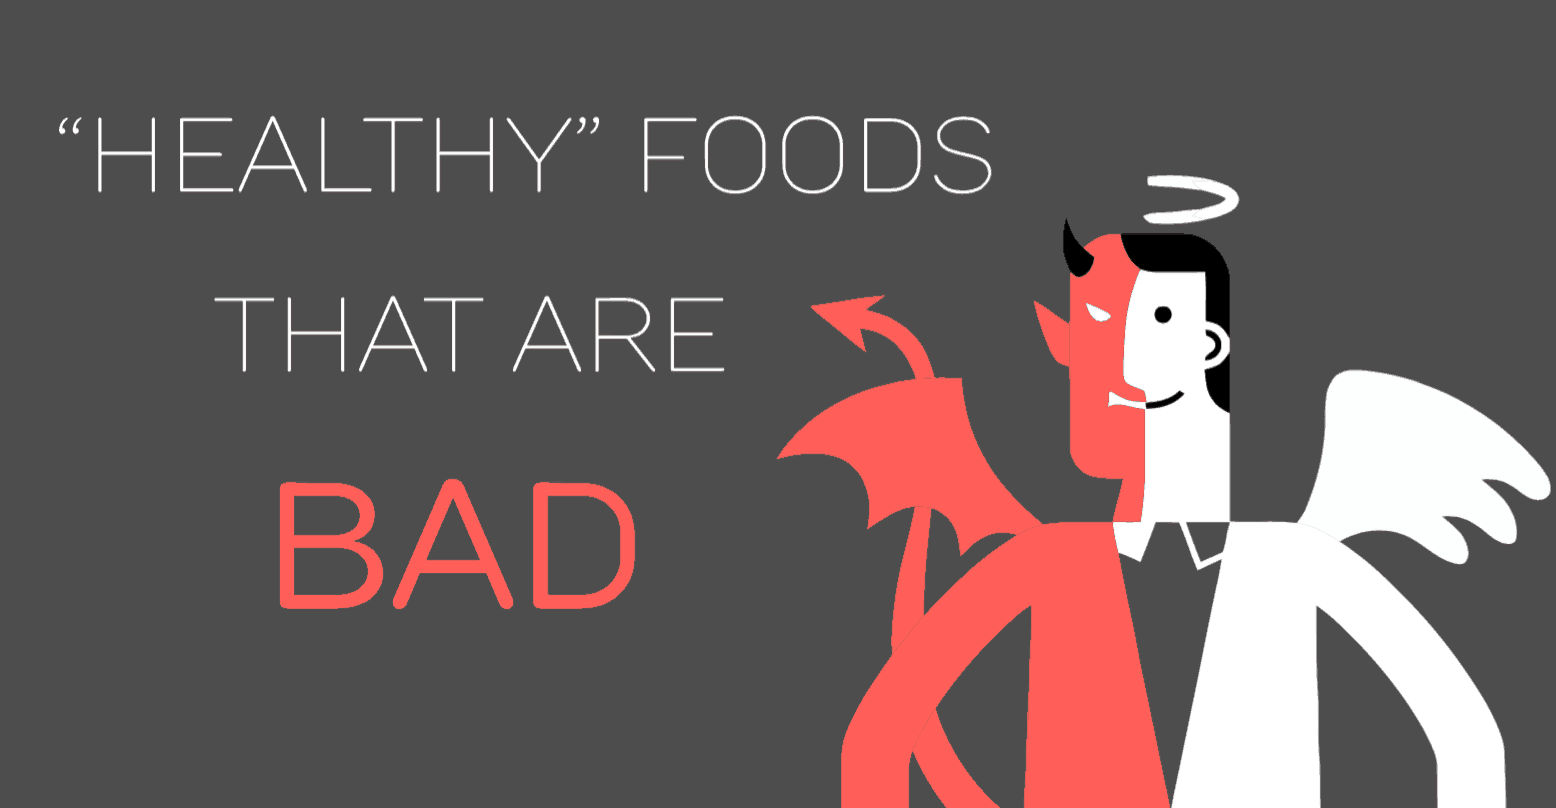 Healthy foods that are bad